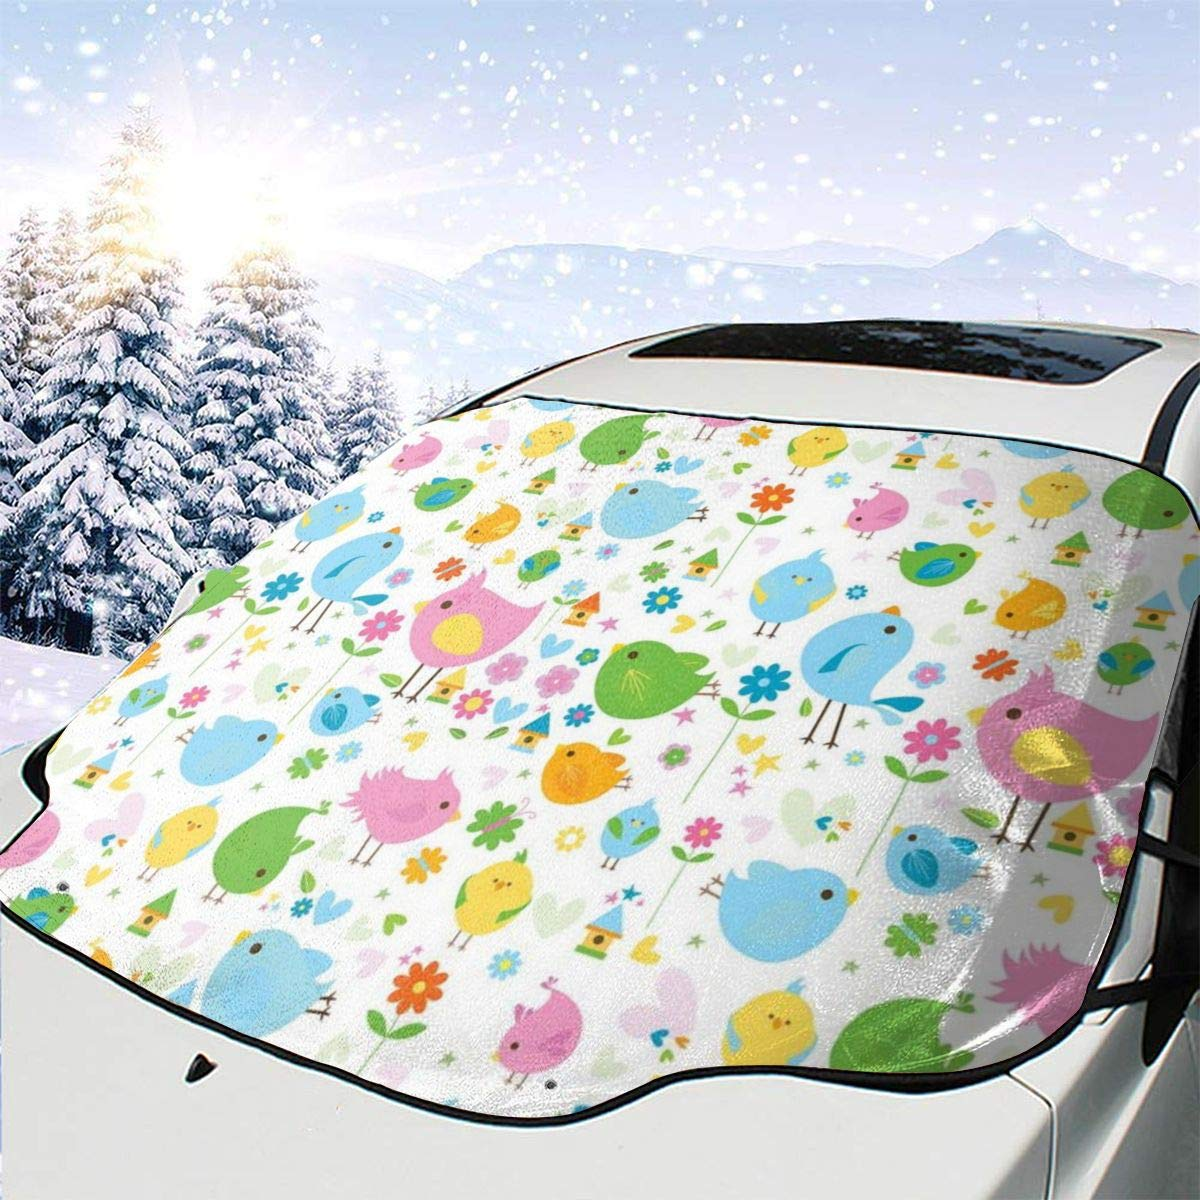 Car Front Window Windshield Snow Birds Season Mesa Mall 70% OFF Outlet Spring and Cover